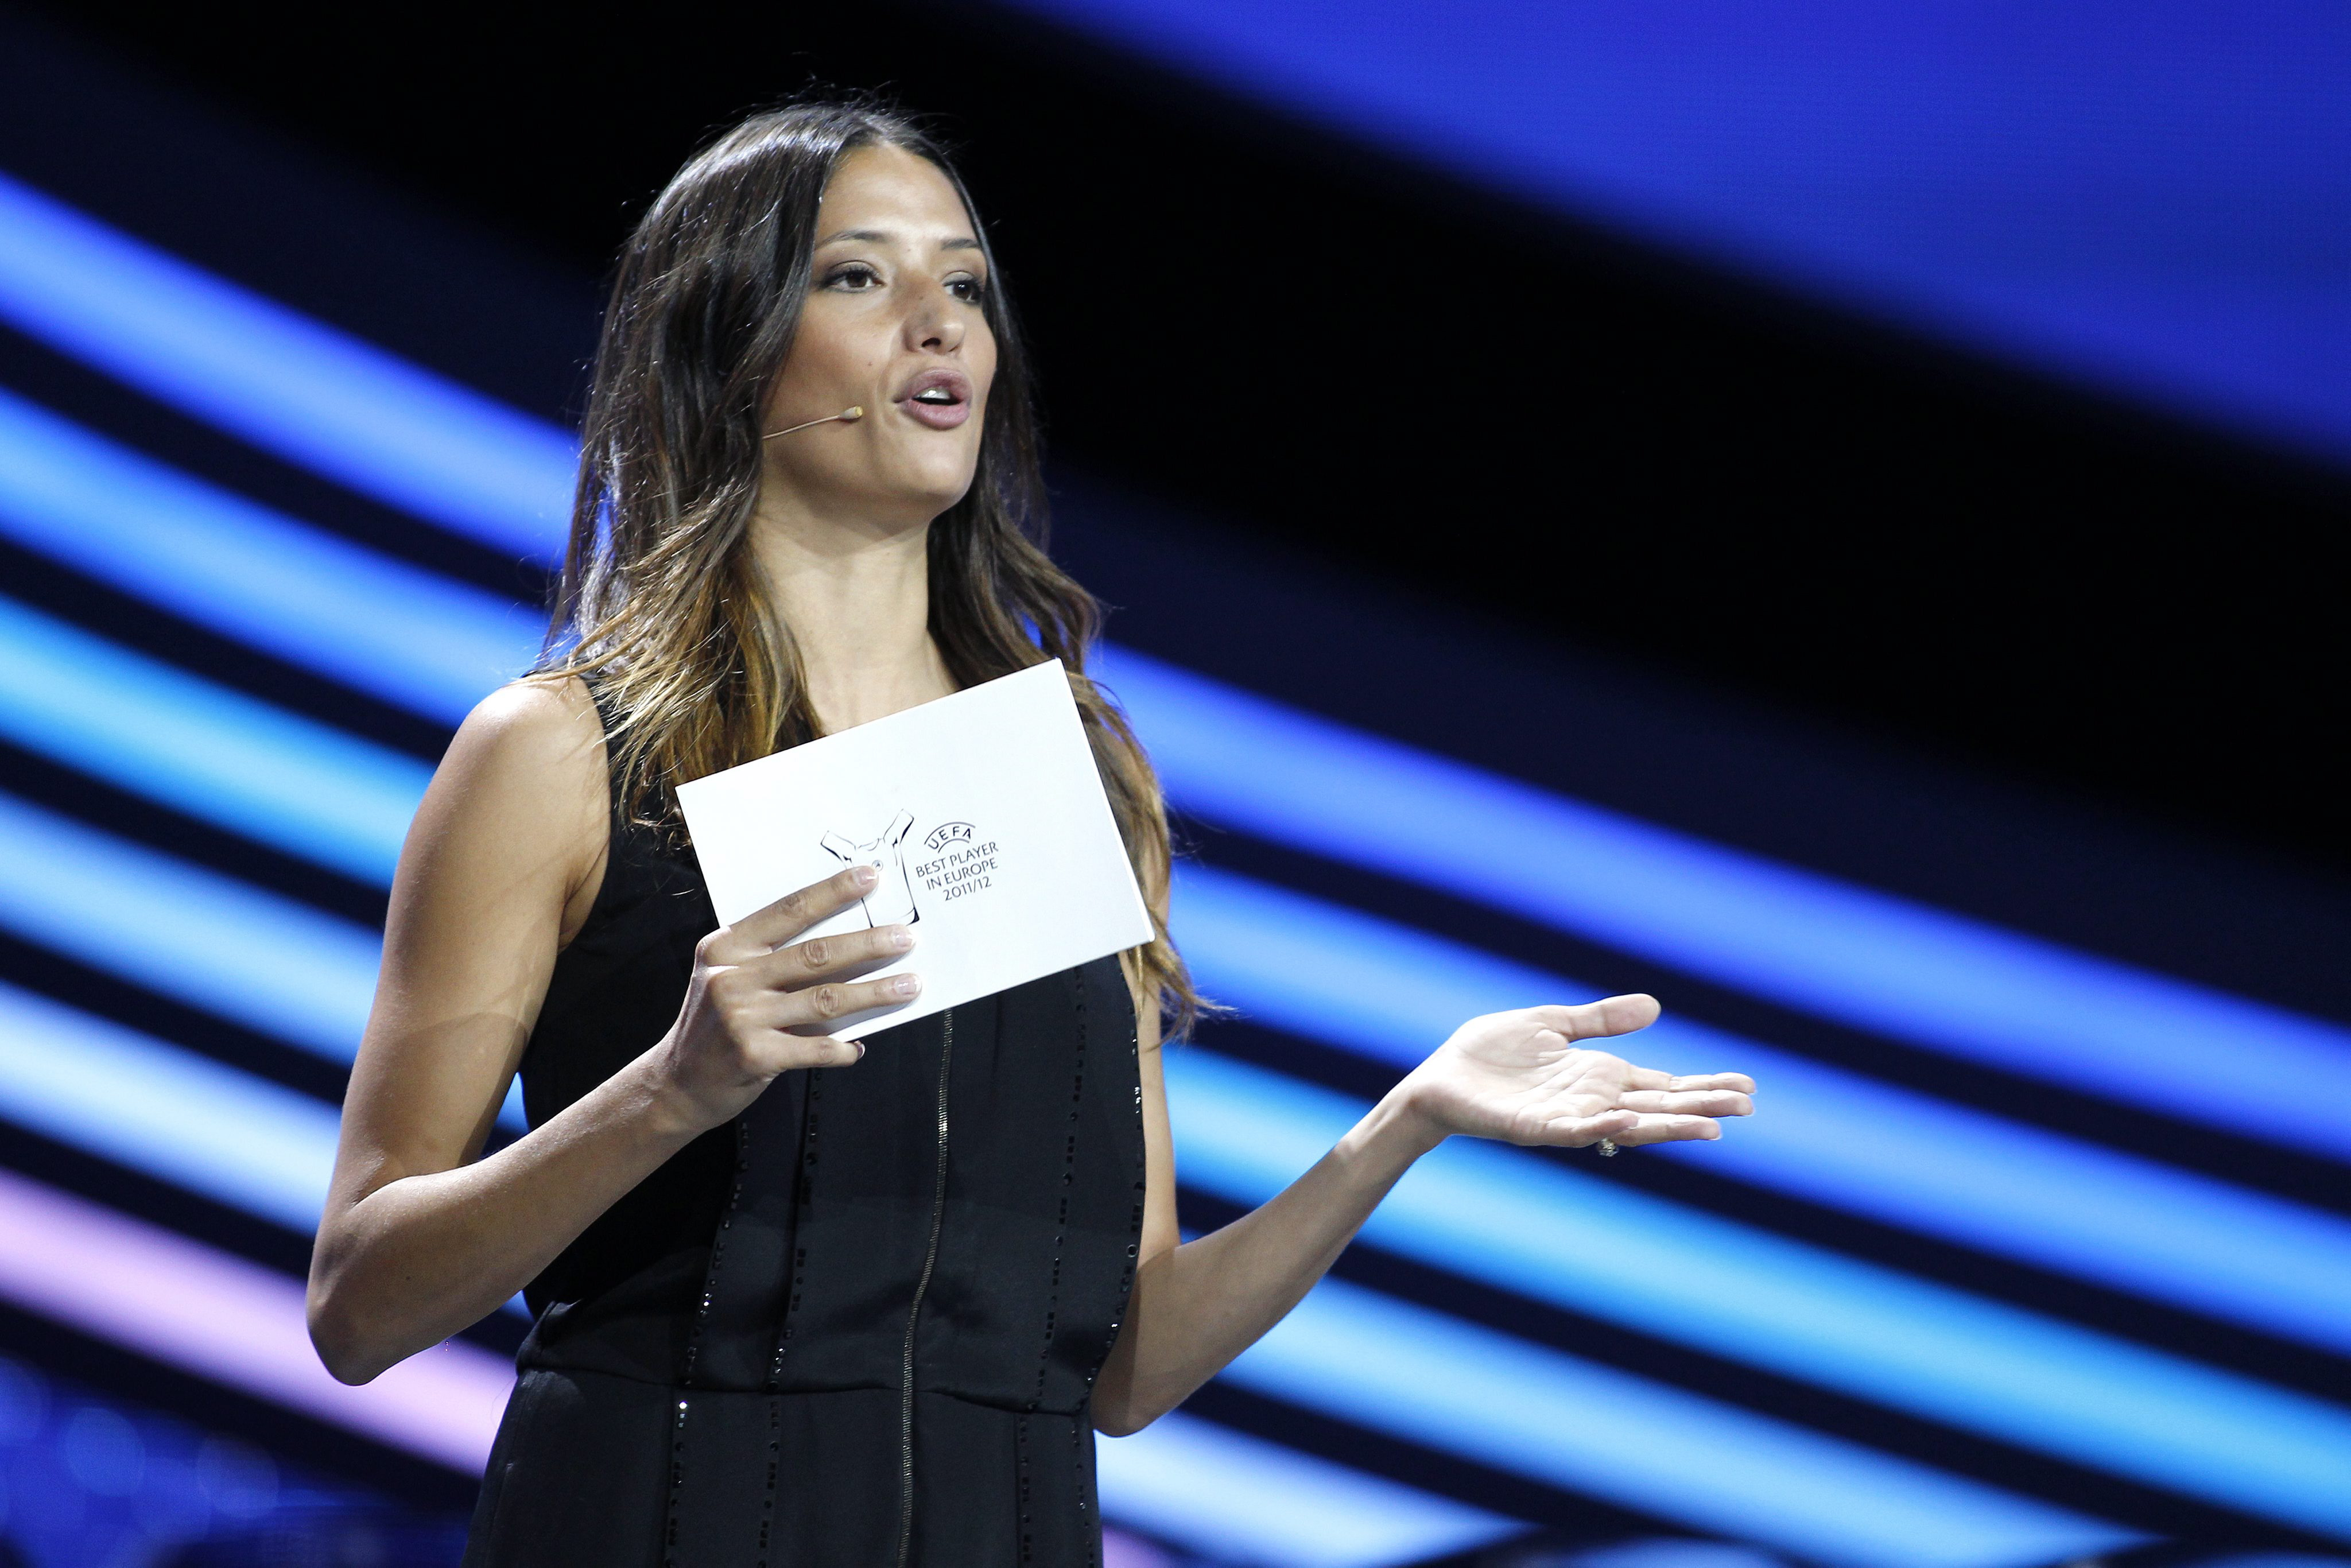 epa03375639 Swiss actress Melanie Winiger hosts the draw ceremony for the UEFA Champions League group stage at Grimaldi Forum